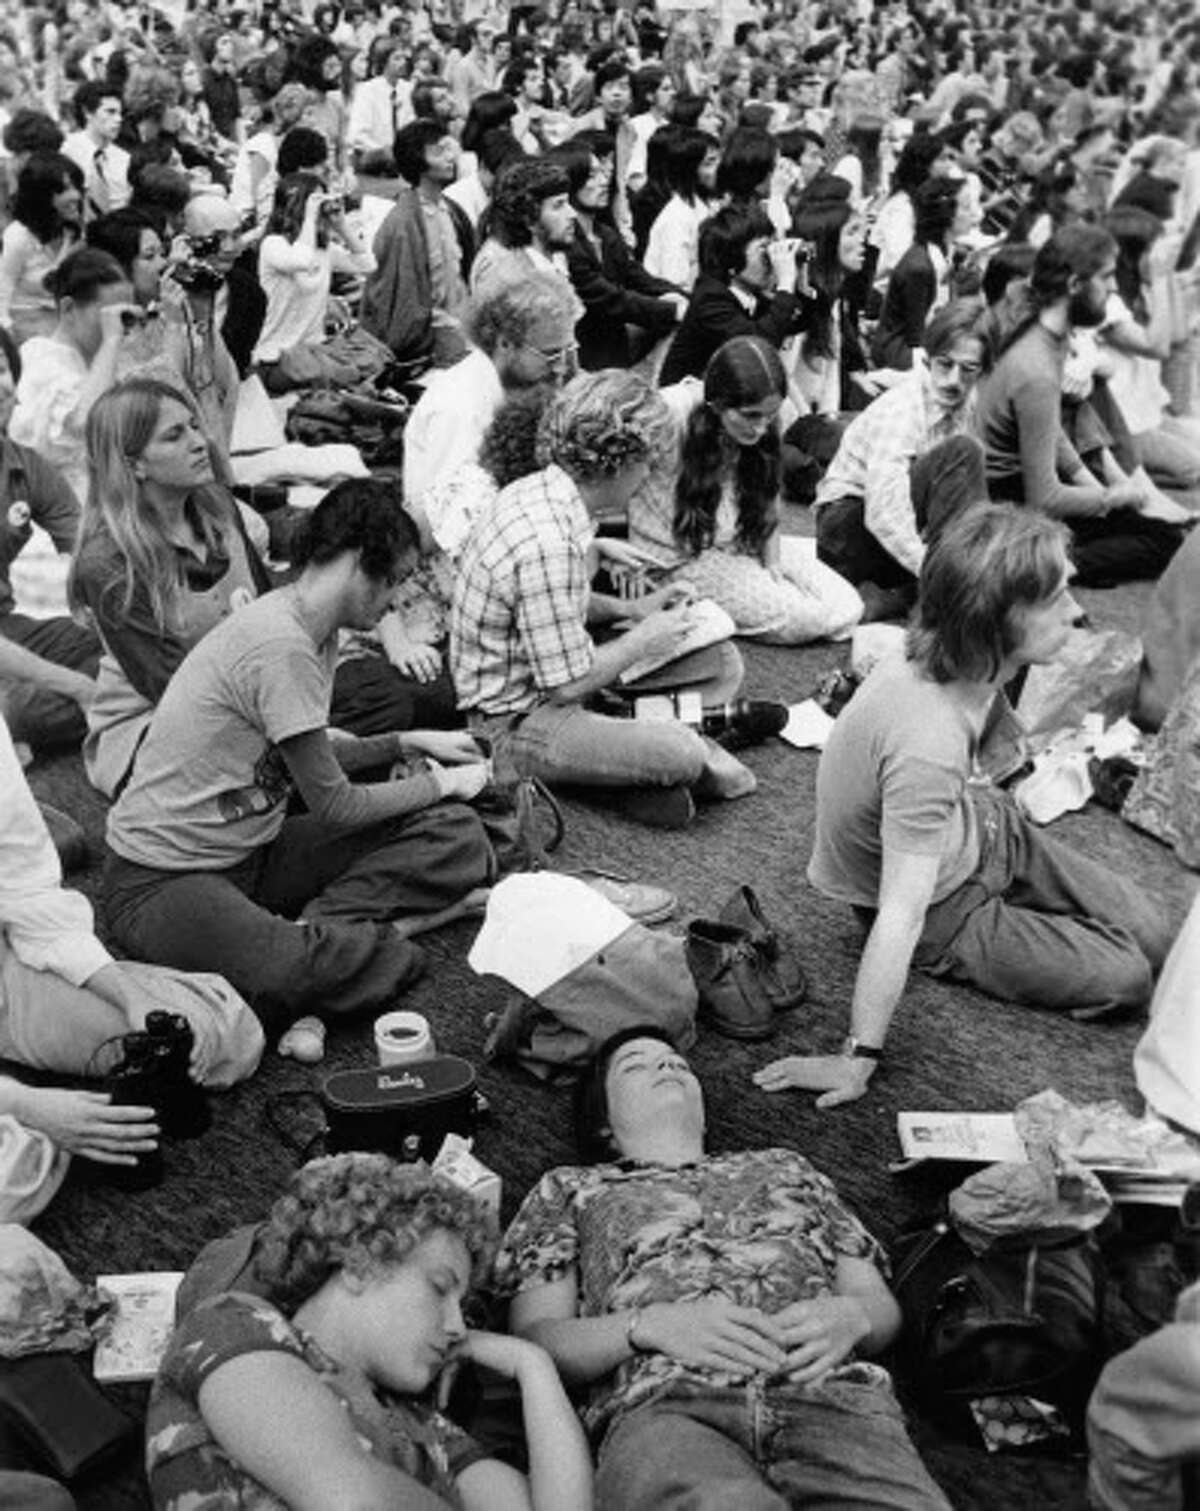 Crowd at the Astrodome gathered for Millennium '73 wait for the appearance of Guru Maharaj Ji. The three-day event sponsored by the guru's Divine Light Mission was held as the grand finale to his